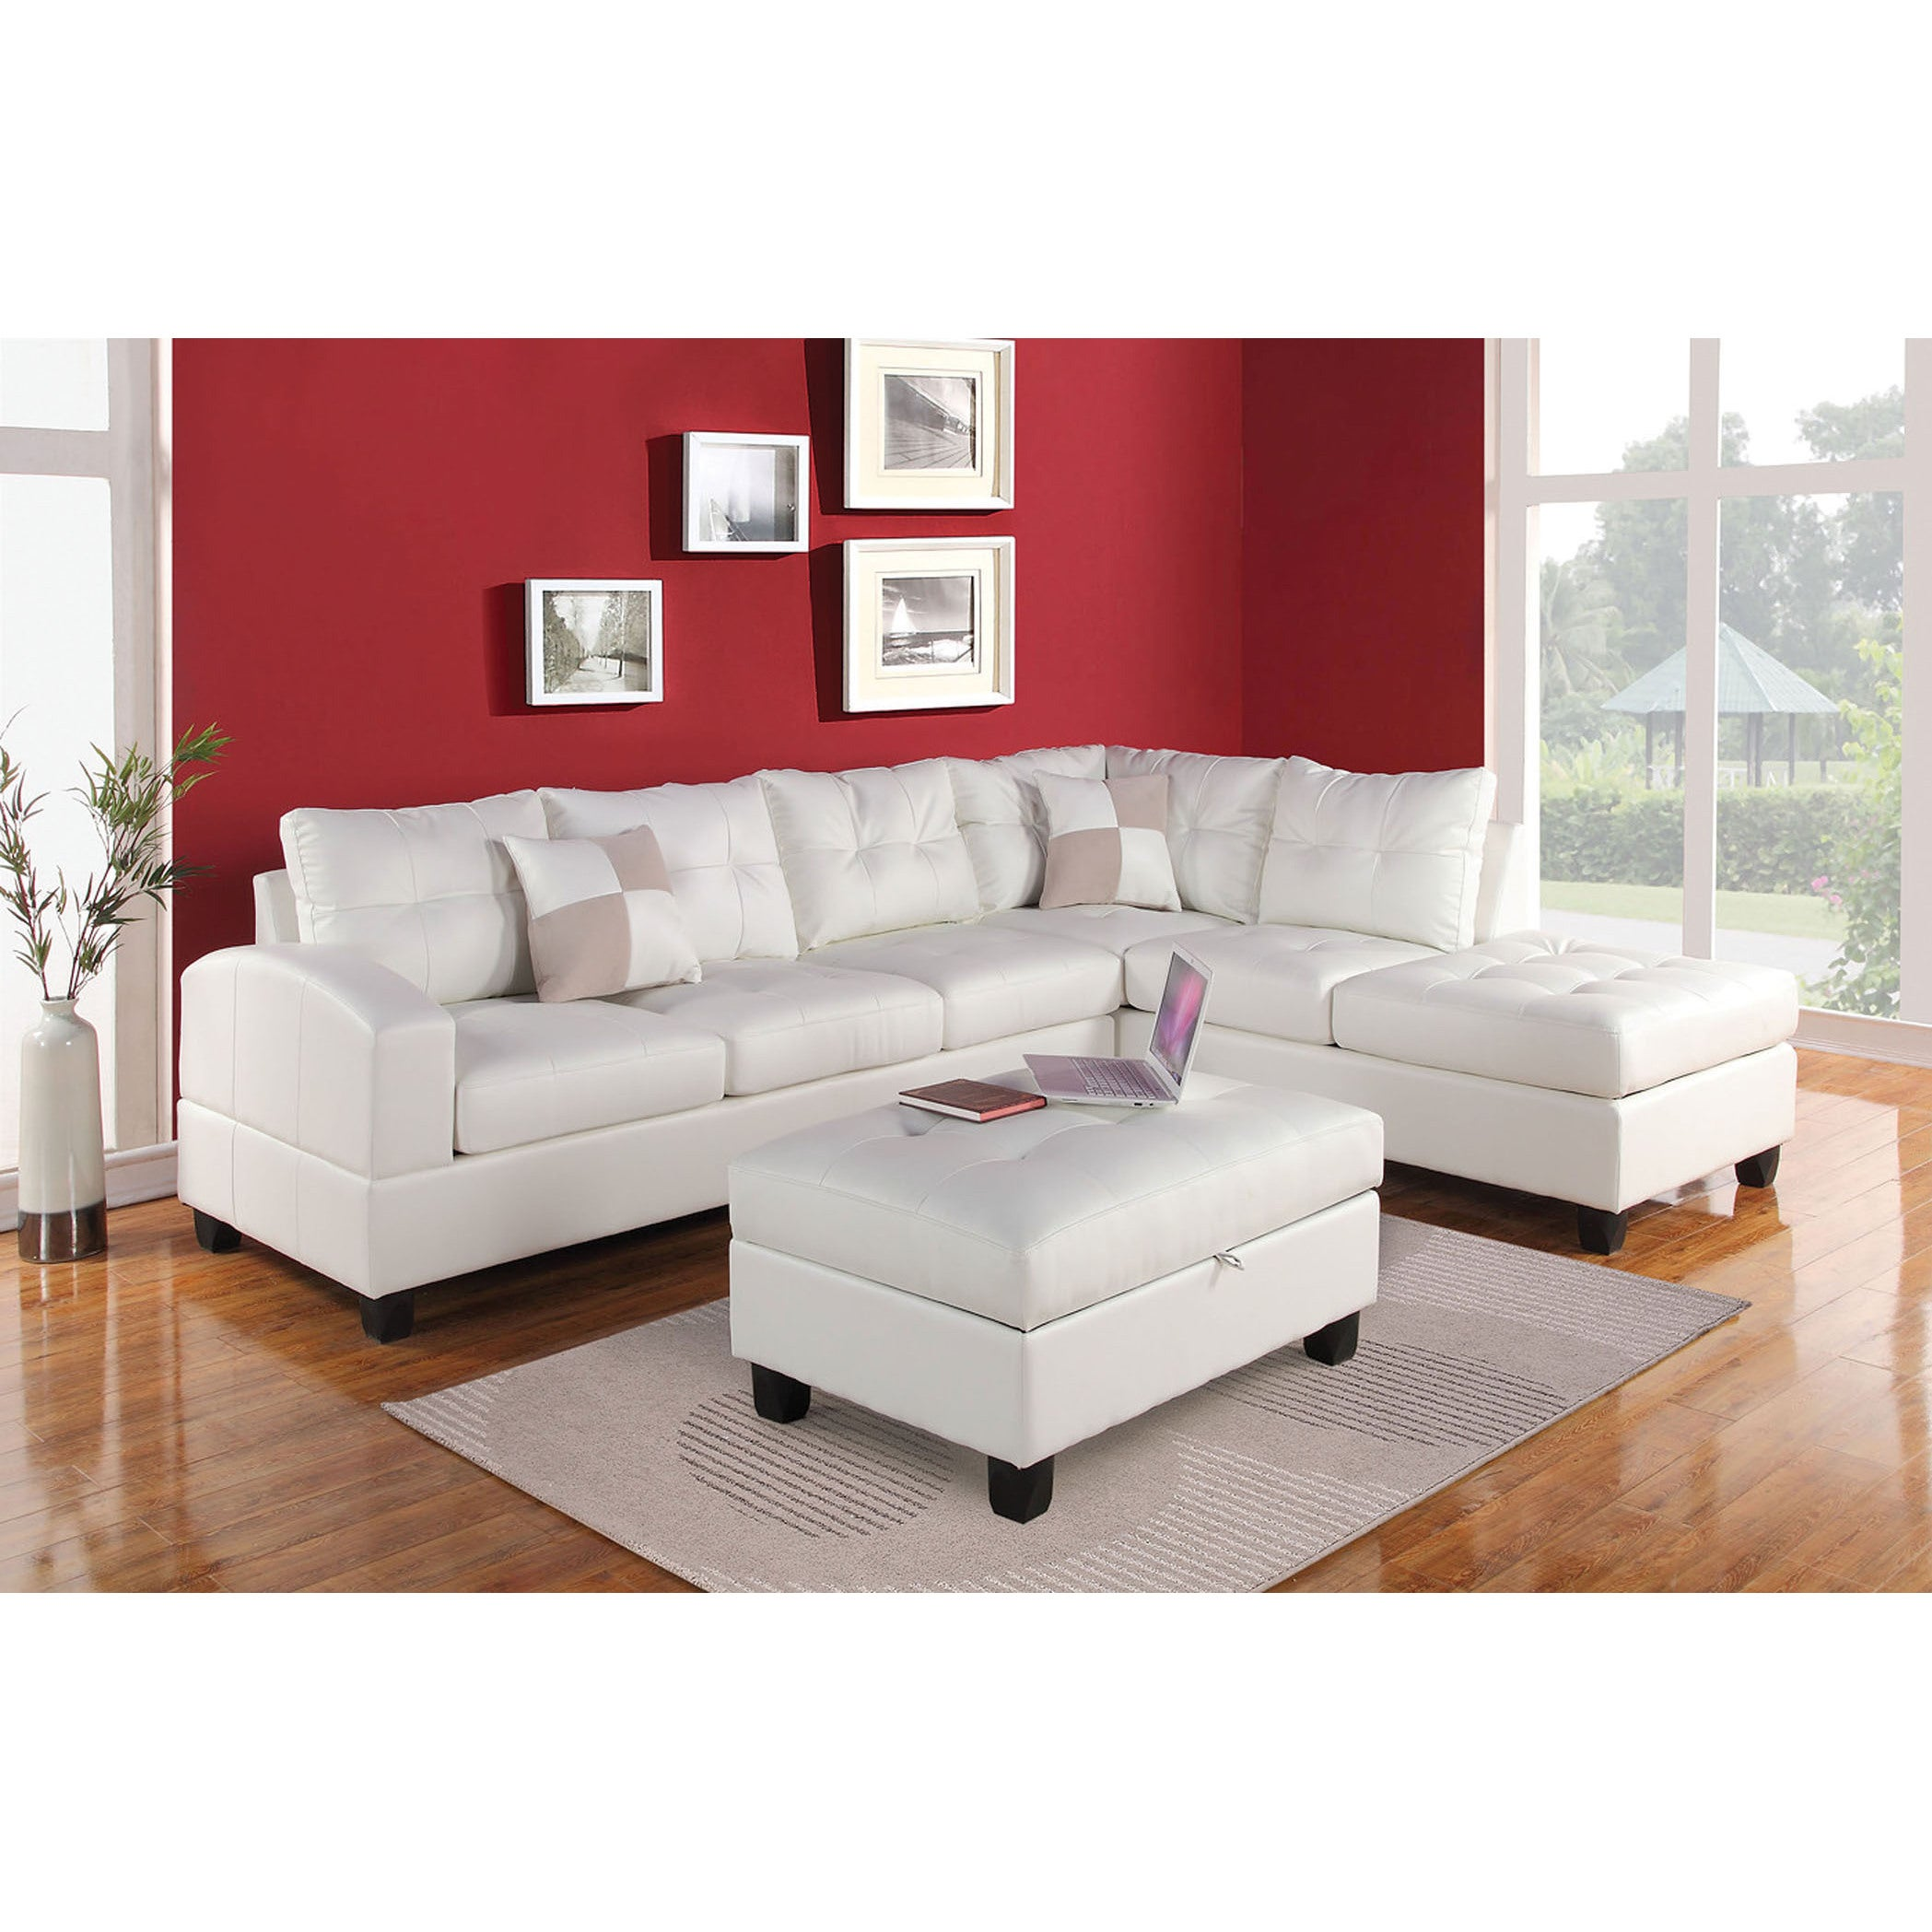 ACME Furniture Kiva Reversible Sectional With 2 Pillows in White